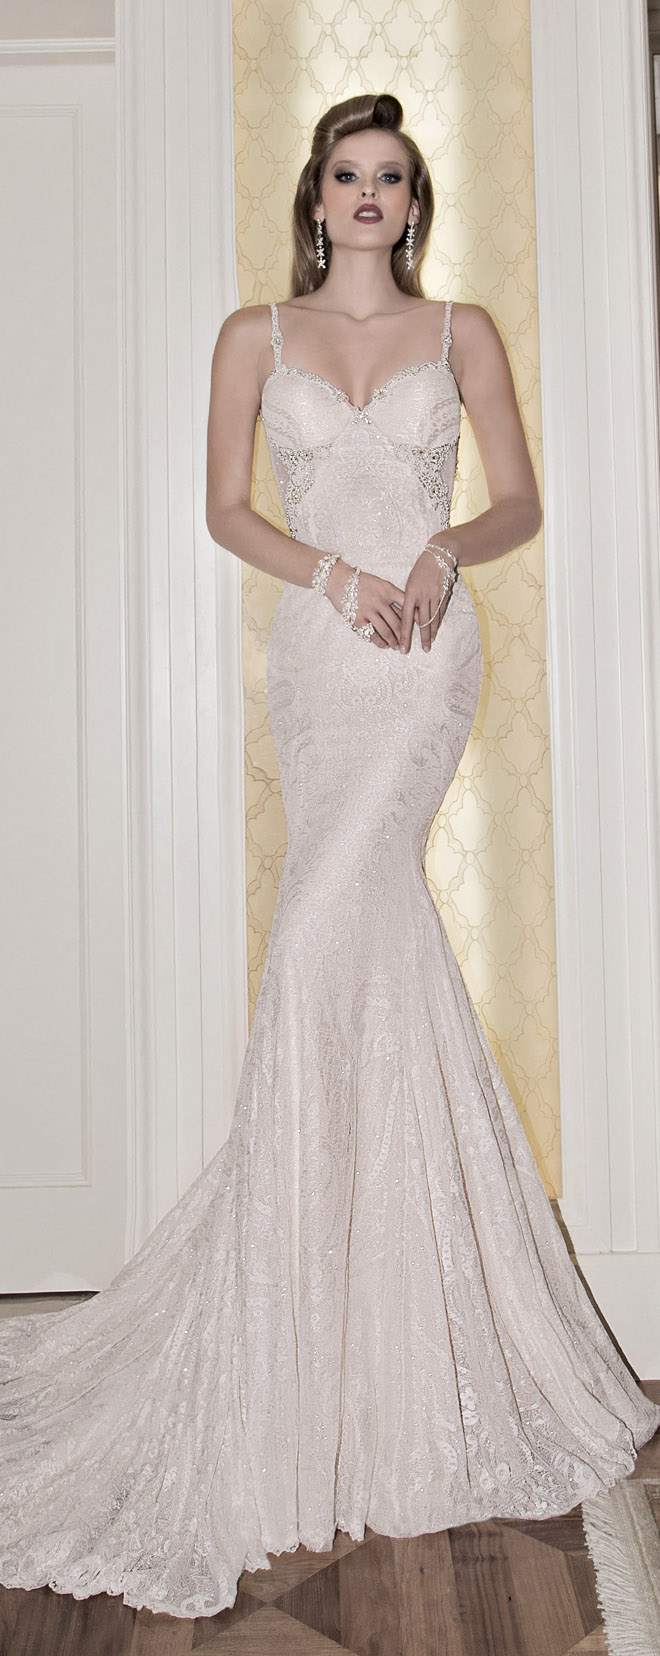 Galia-lahav-Tales-of-the-Jazz-Age-bridal-collection-Norma